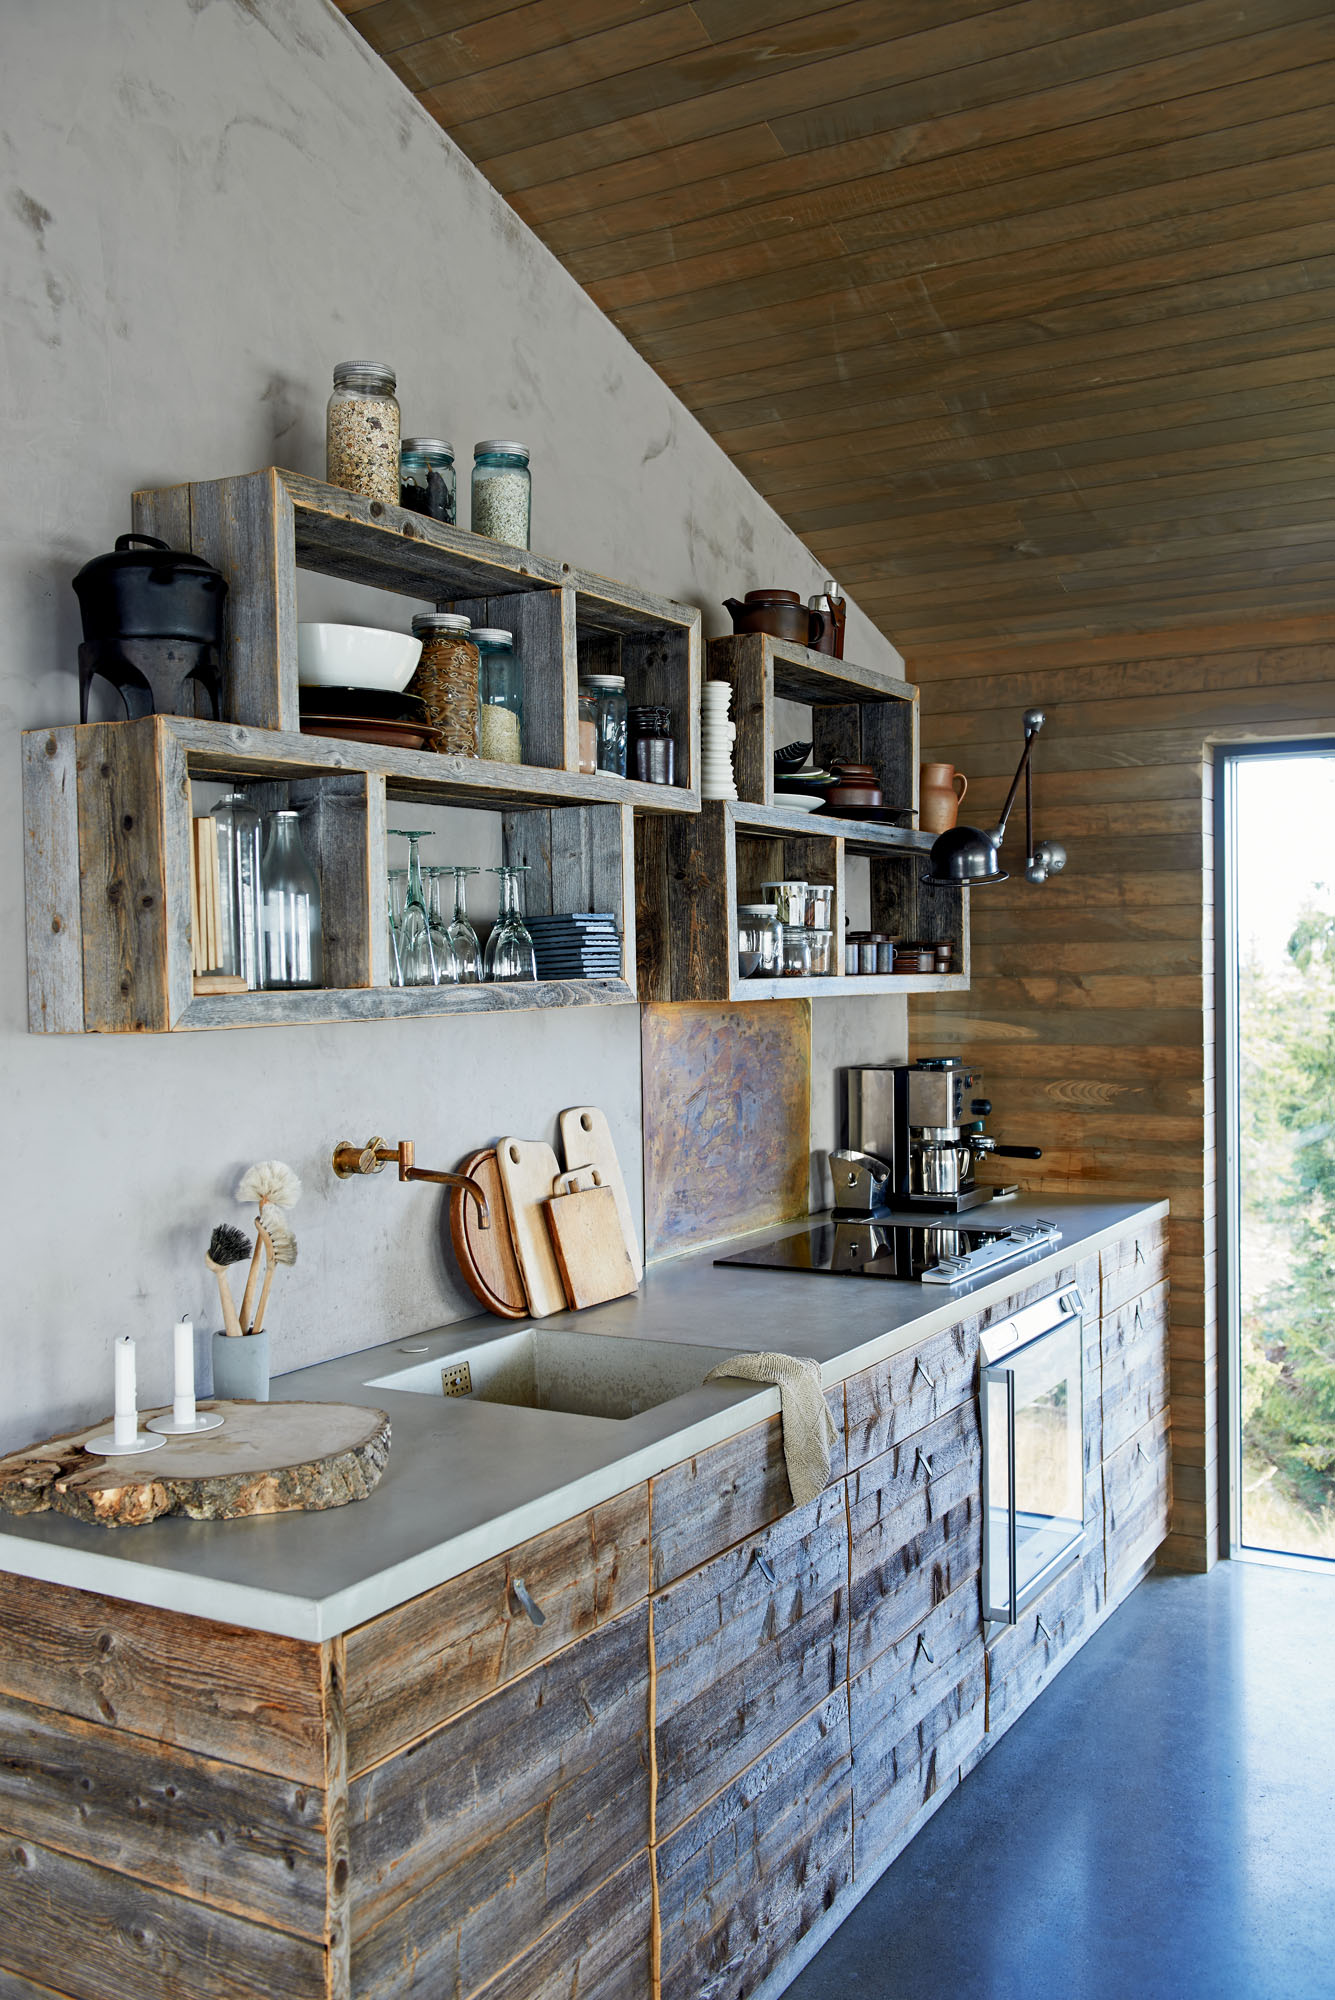 Kitchen with reclaimed wood